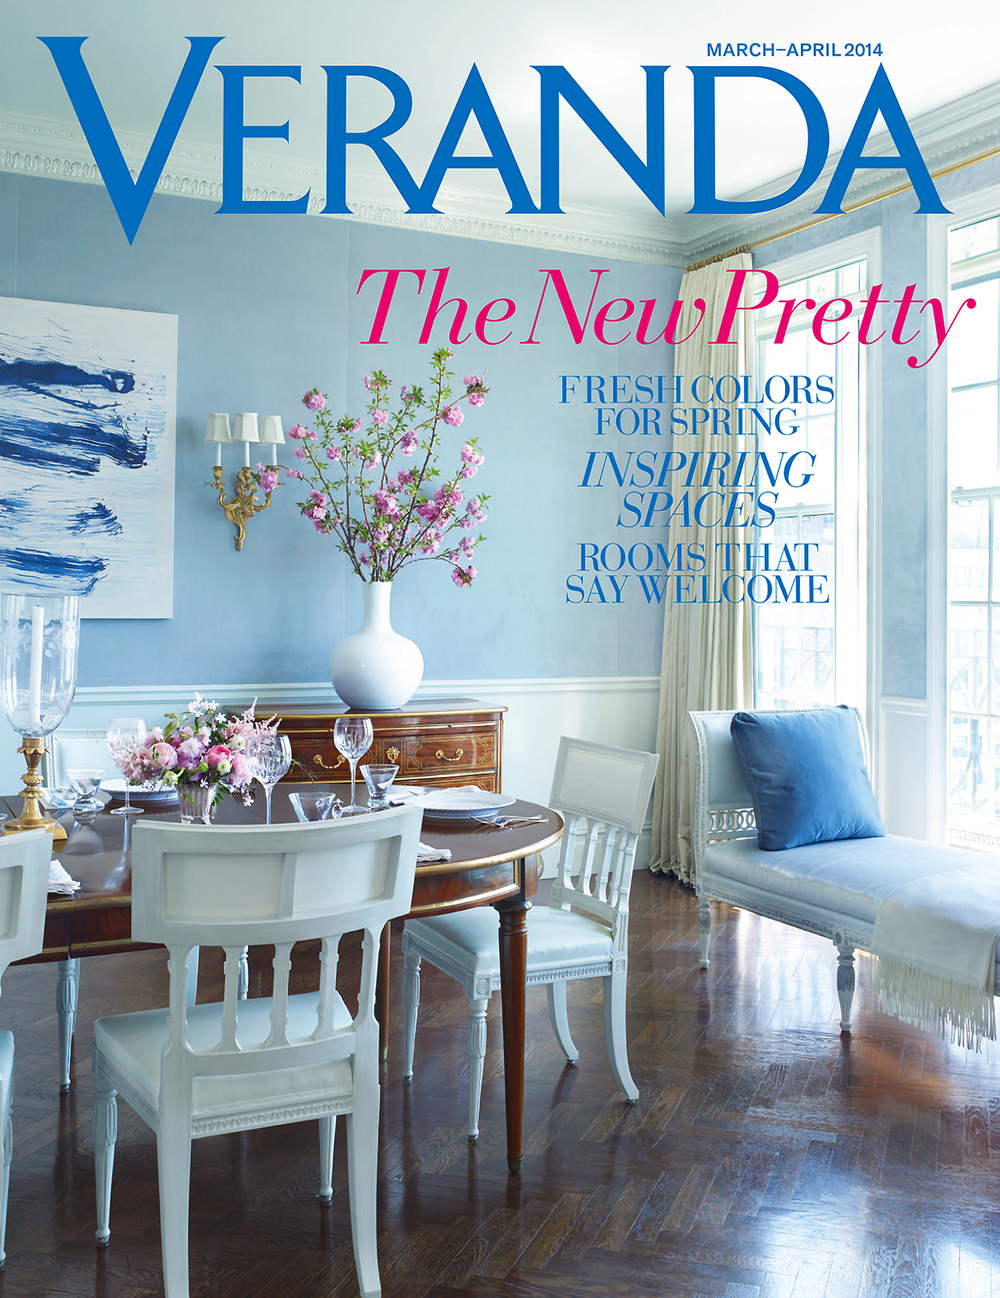 Veranda COVER_March April 2014.jpg